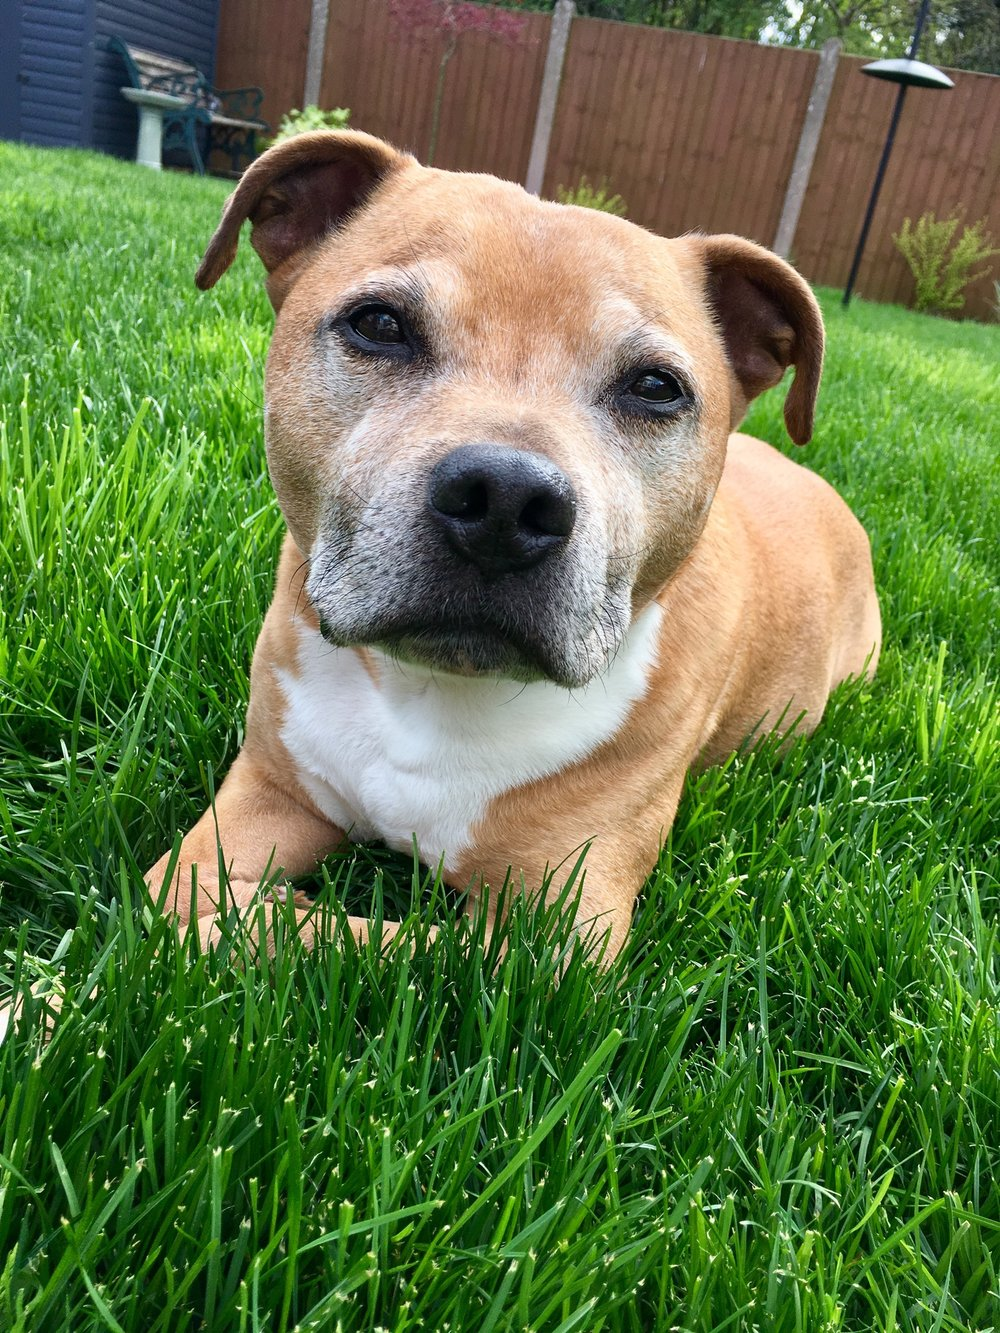 bruce - 11 Year Old Staffordshire Bull Terrier ~ UK Needs: Medium Quad Wheelchair ~ $900Donations received: $900.00 (Updated 8/10/2018)Please consider donating to other puppers on our waiting list.